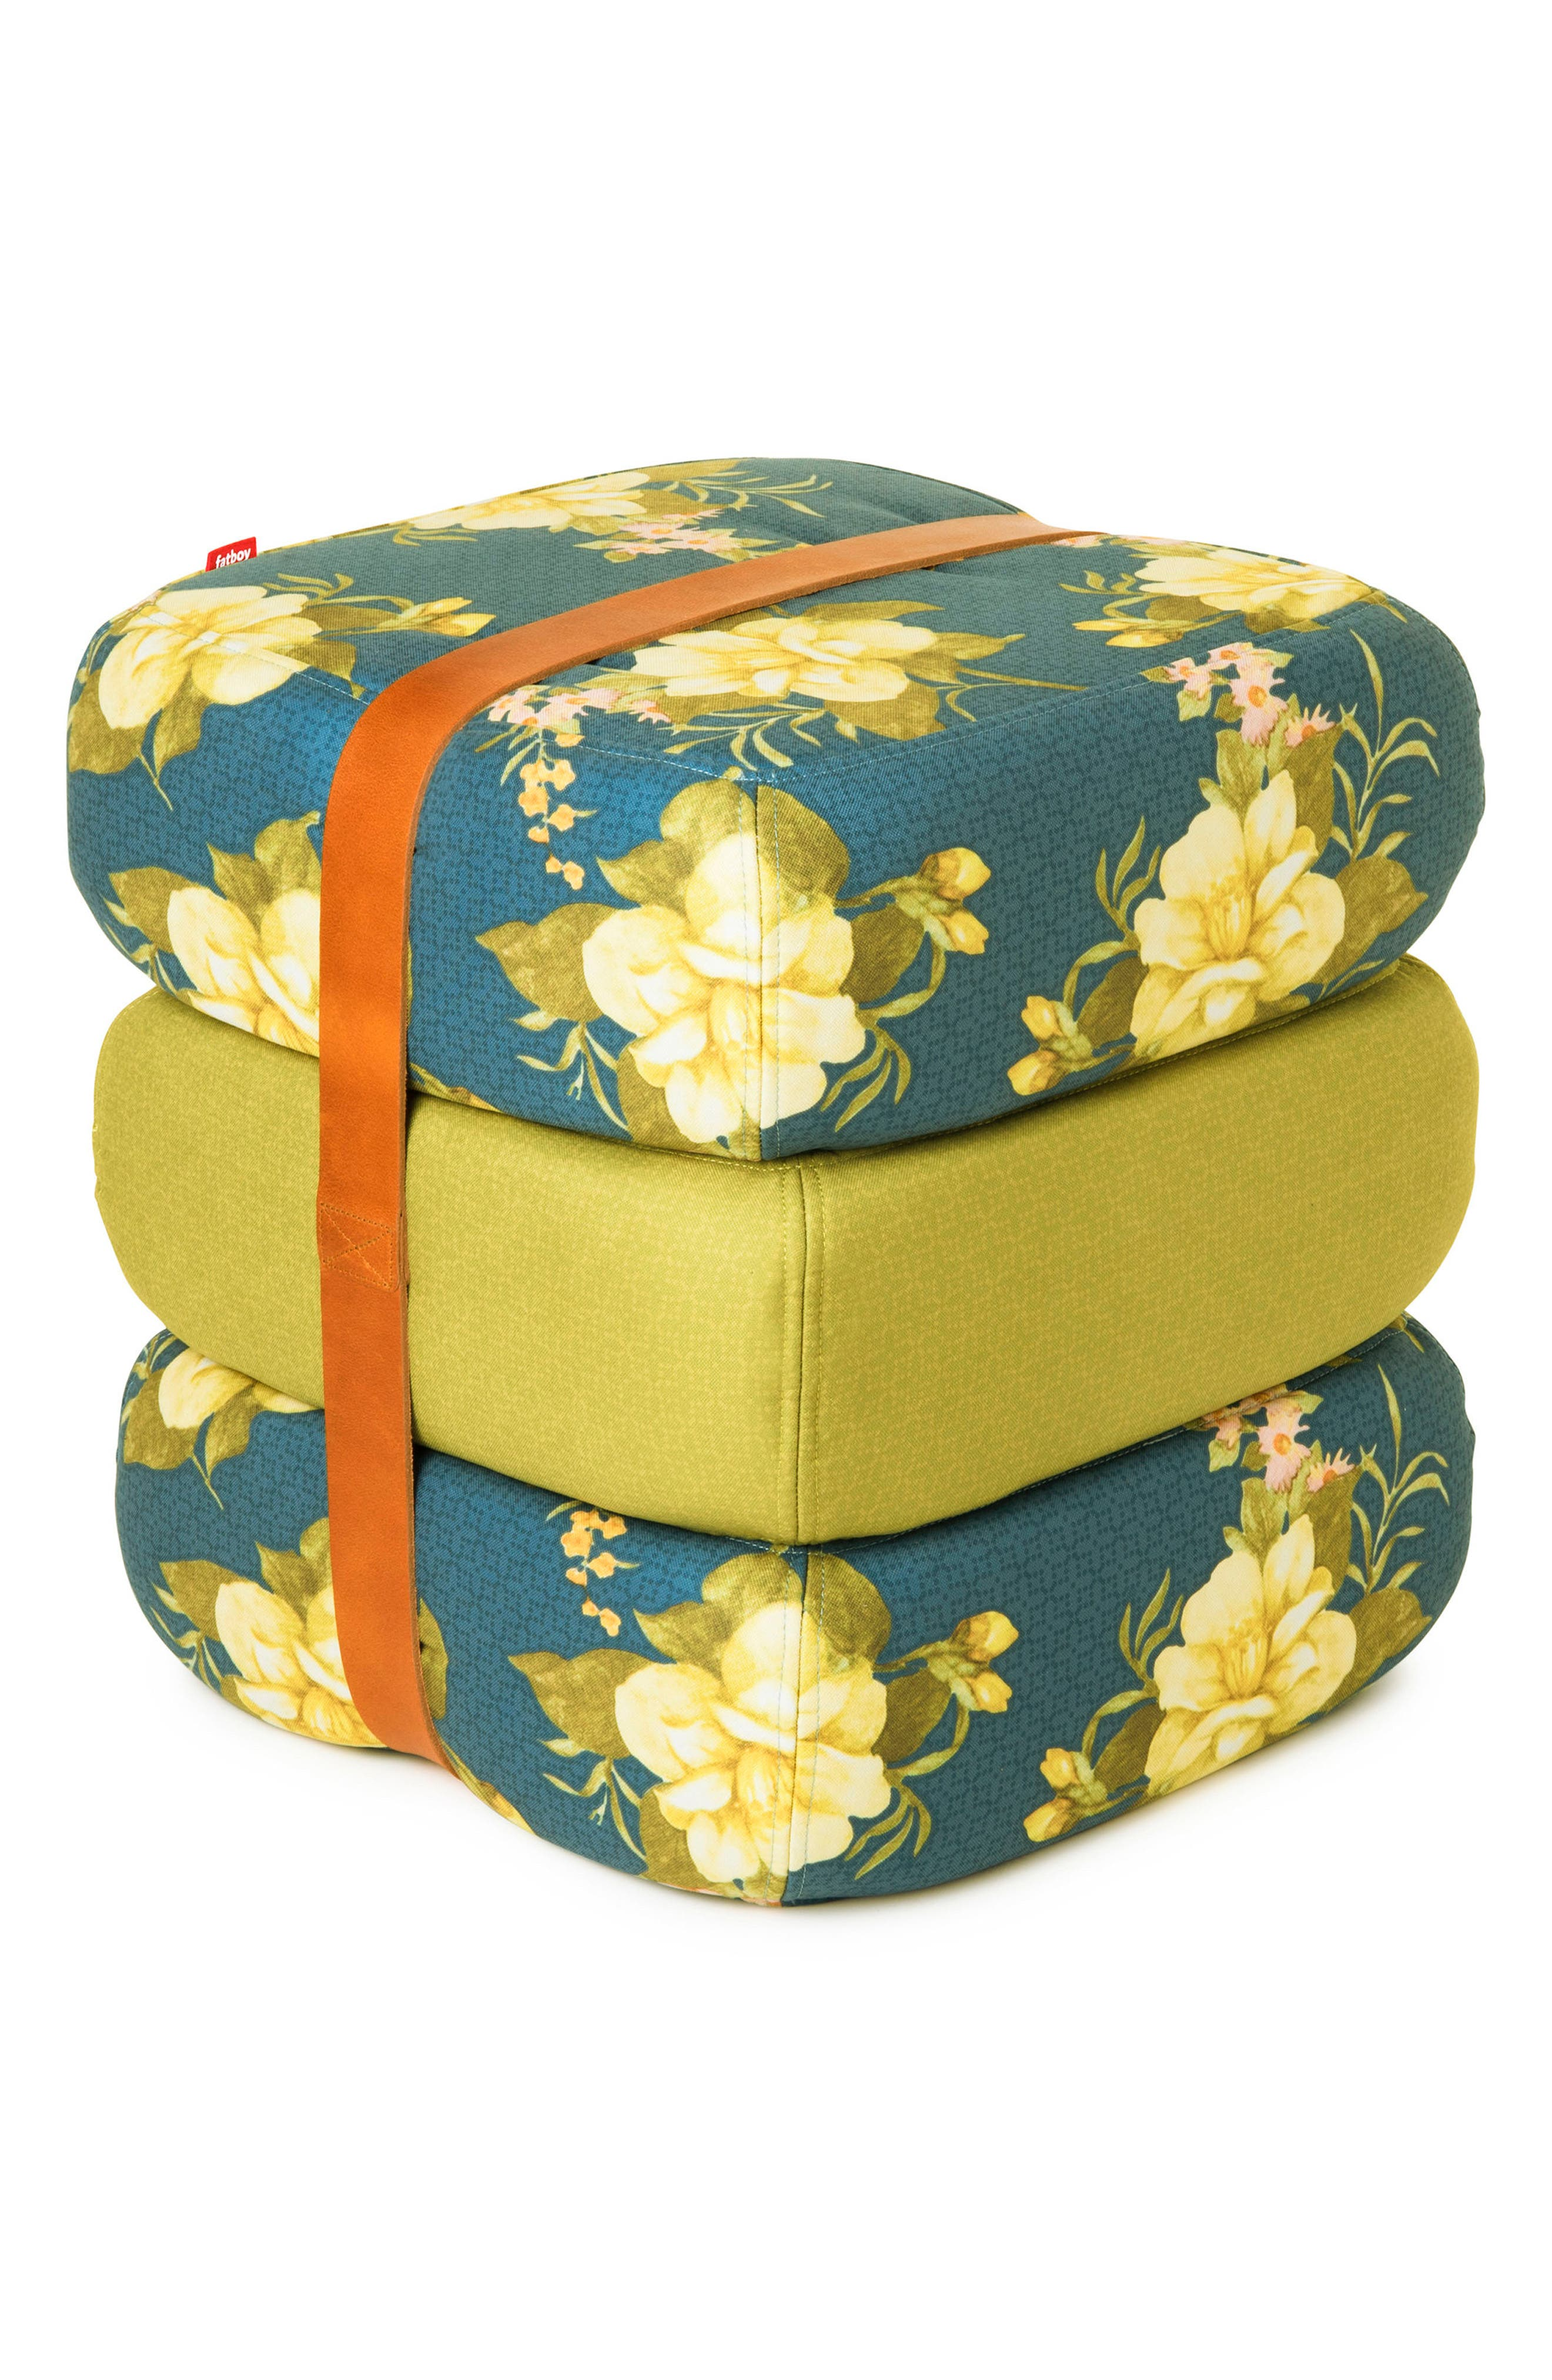 Baboesjka Set of 3 Pillows,                         Main,                         color, Wild Roses Blue